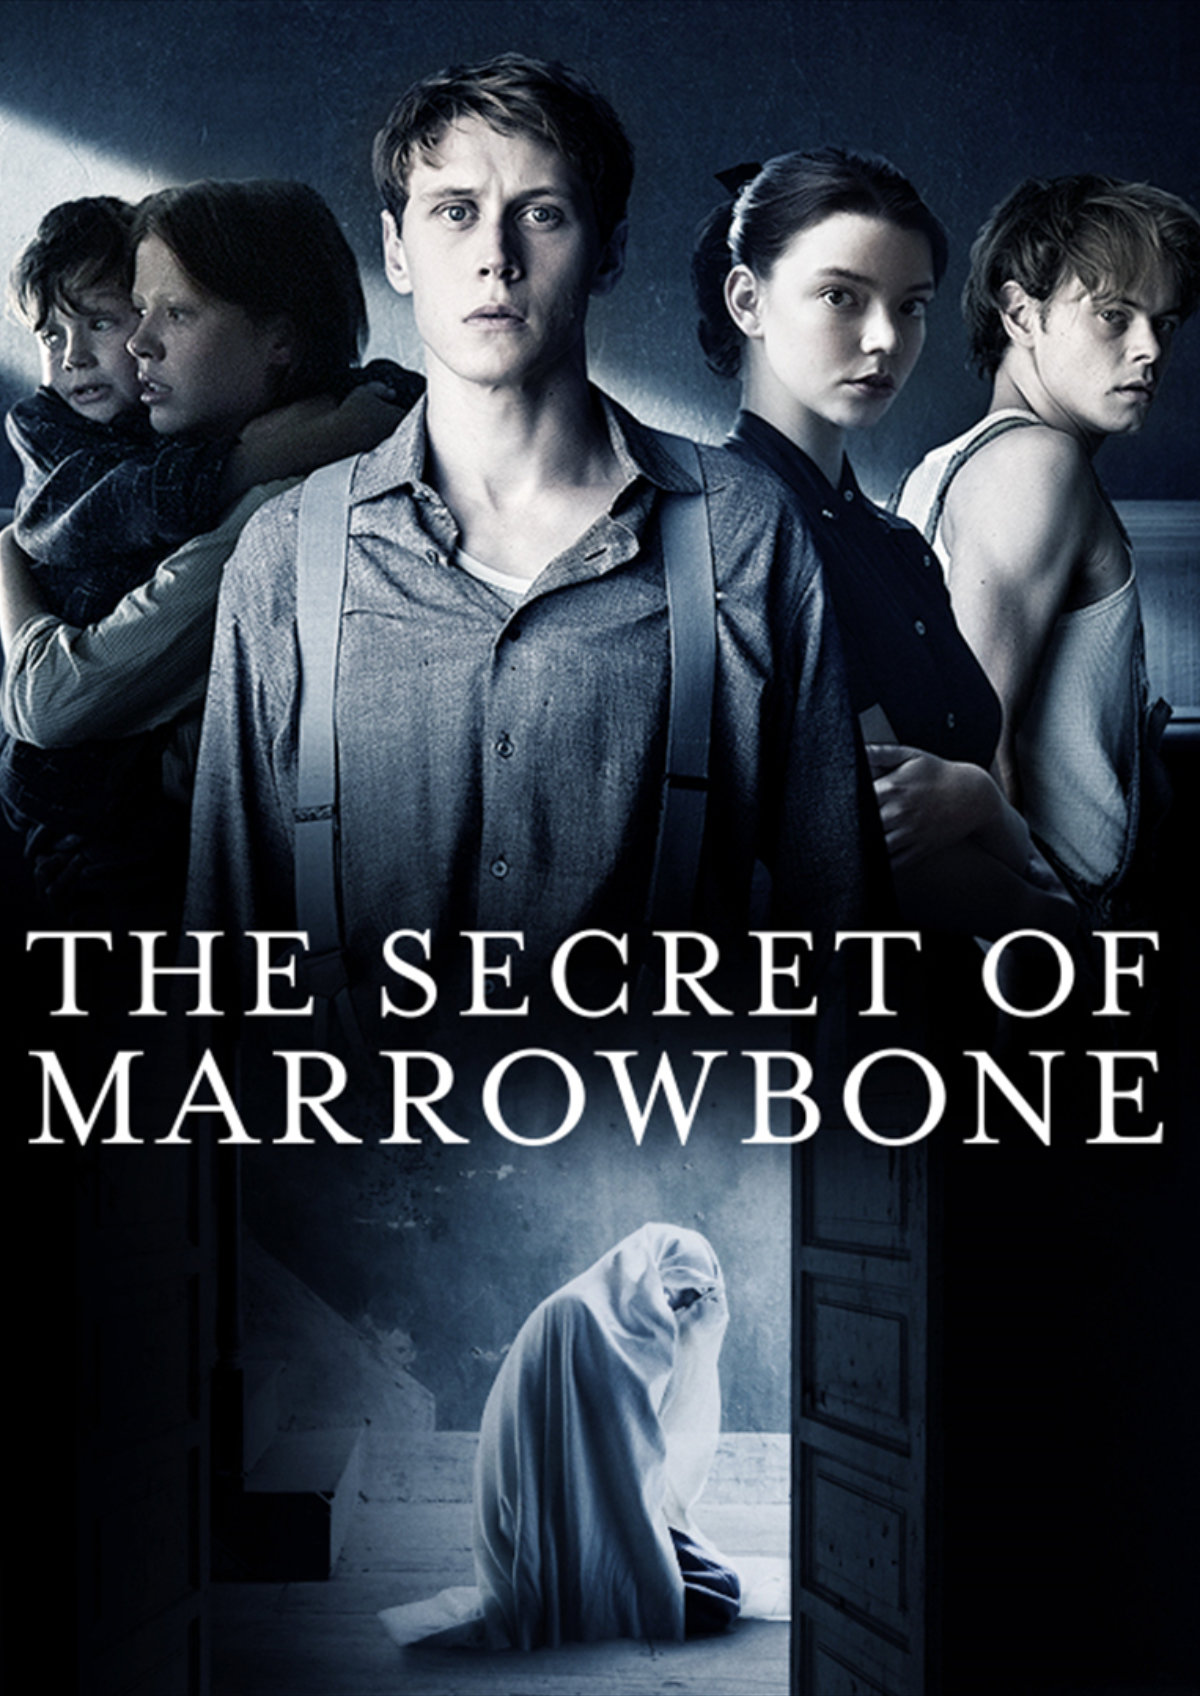 'The Secret Of Marrowbone' movie poster